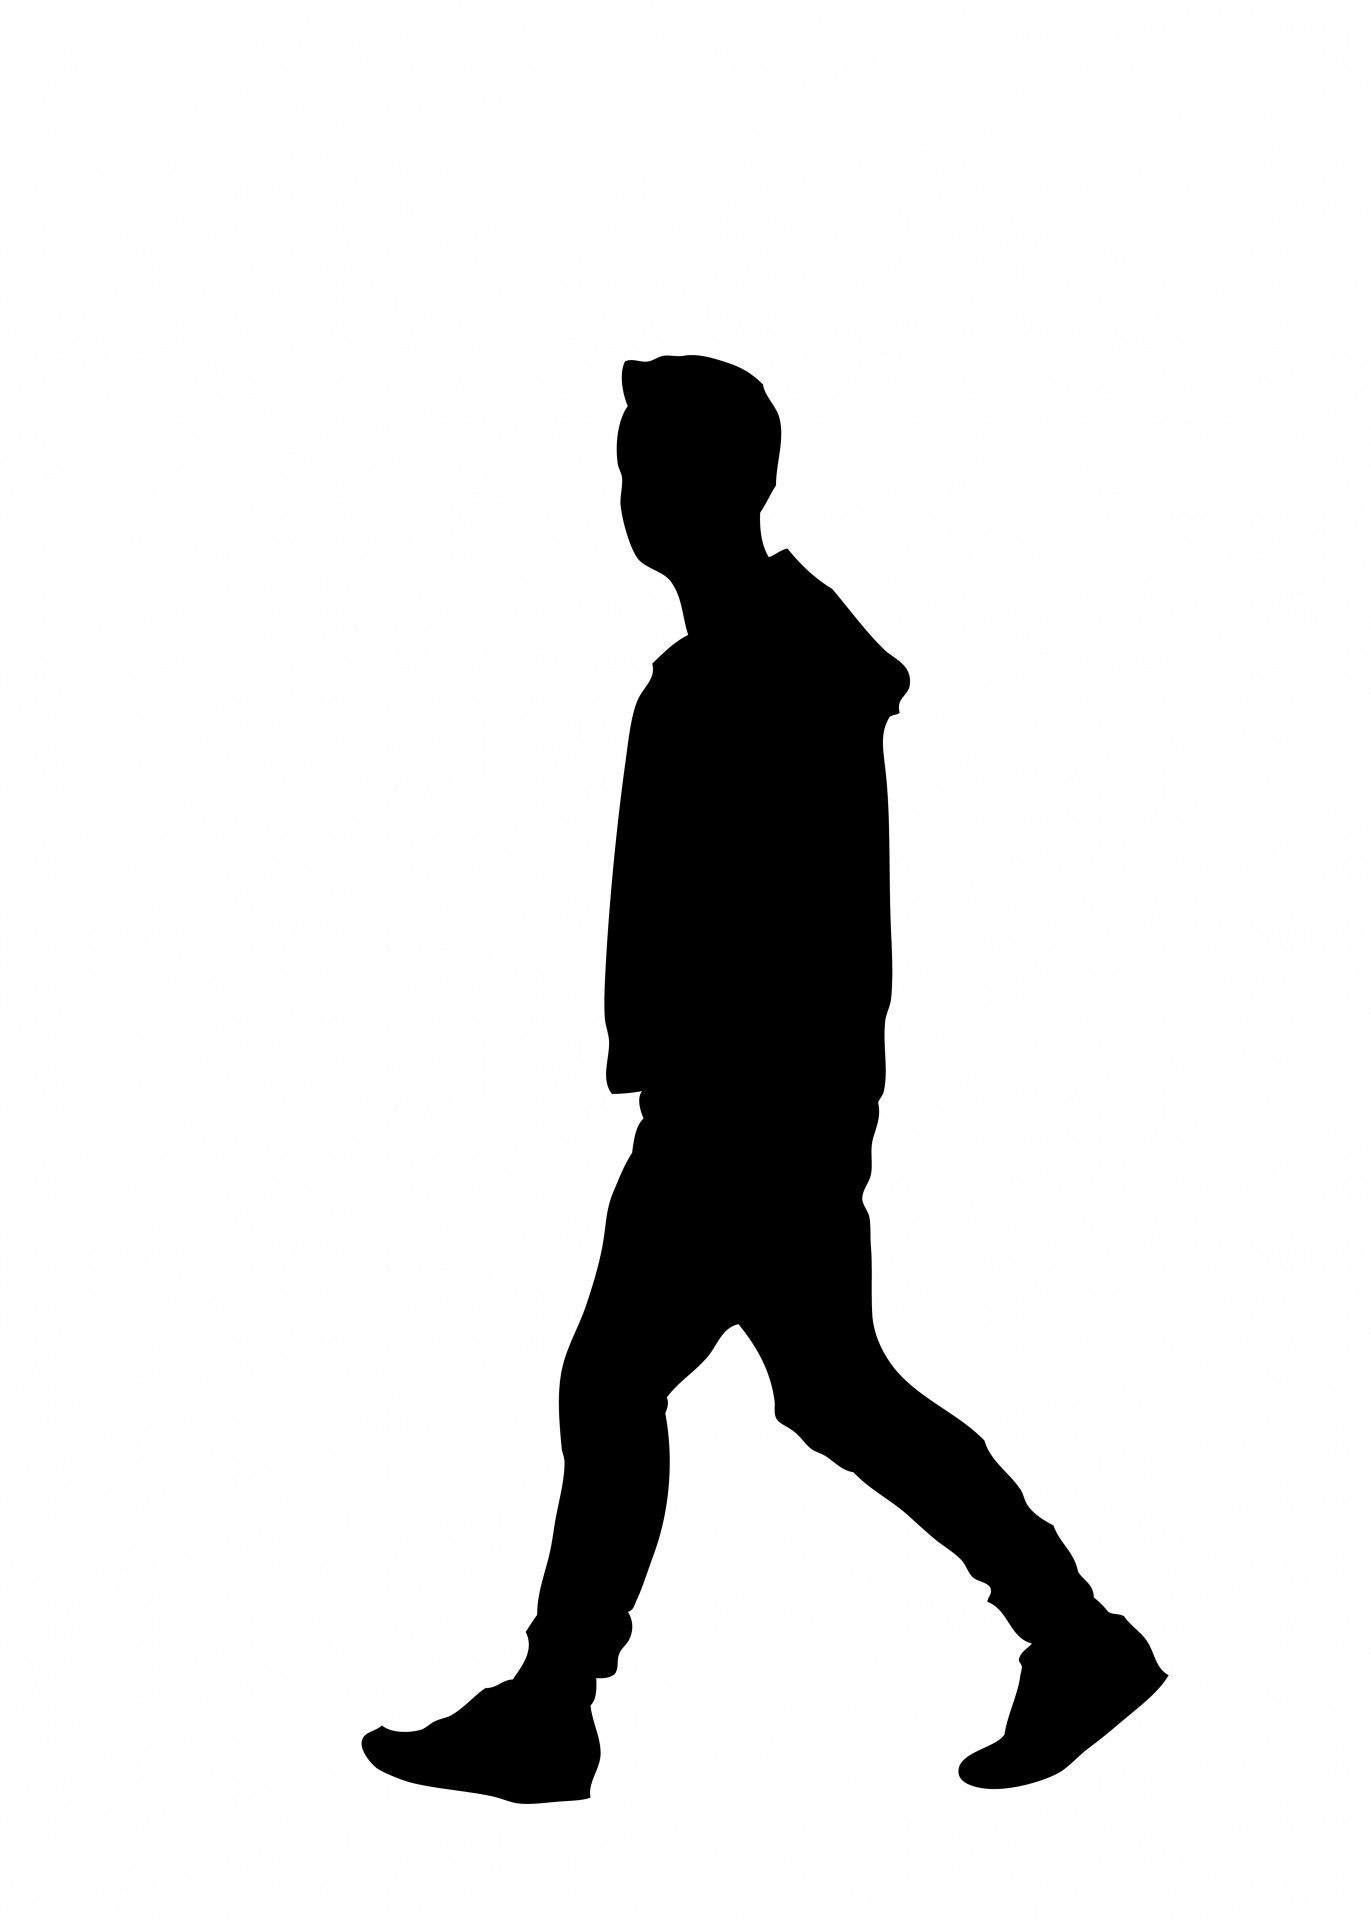 silhouette walking away - Google Search | Scale figures ...